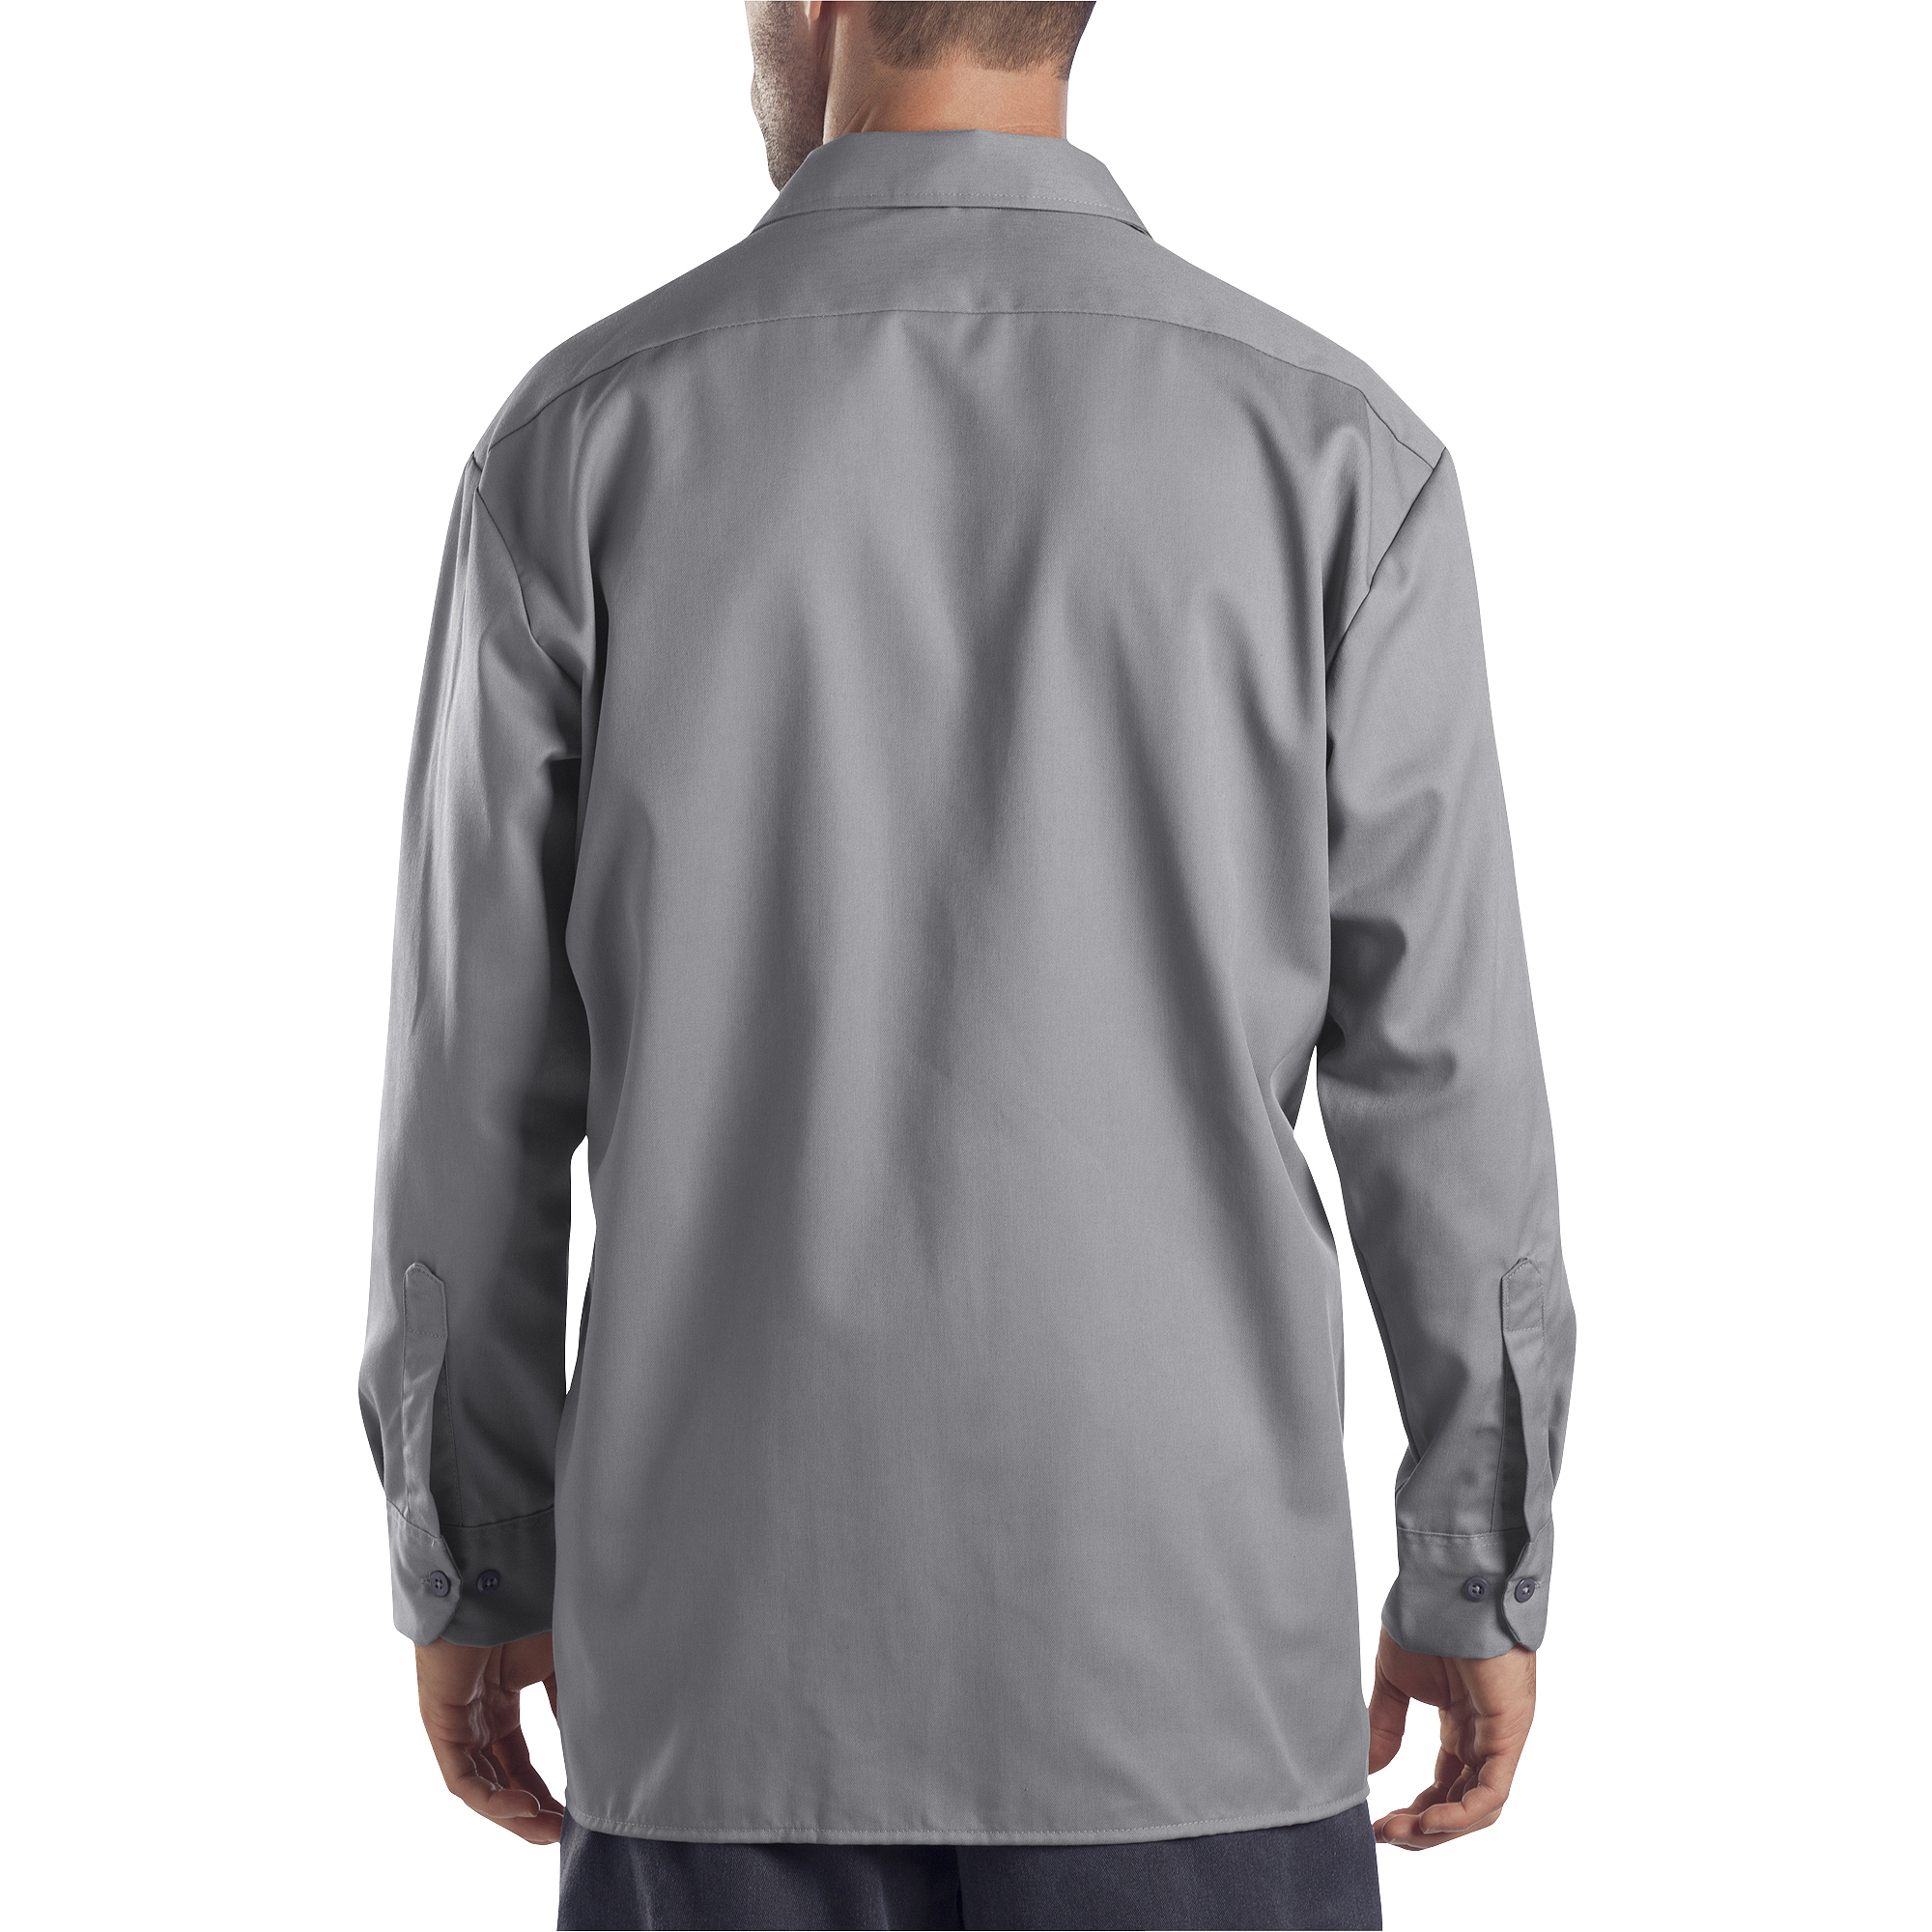 Dickies Men's Original Fit Long Sleeve Twill Work Shirt - Walmart.com